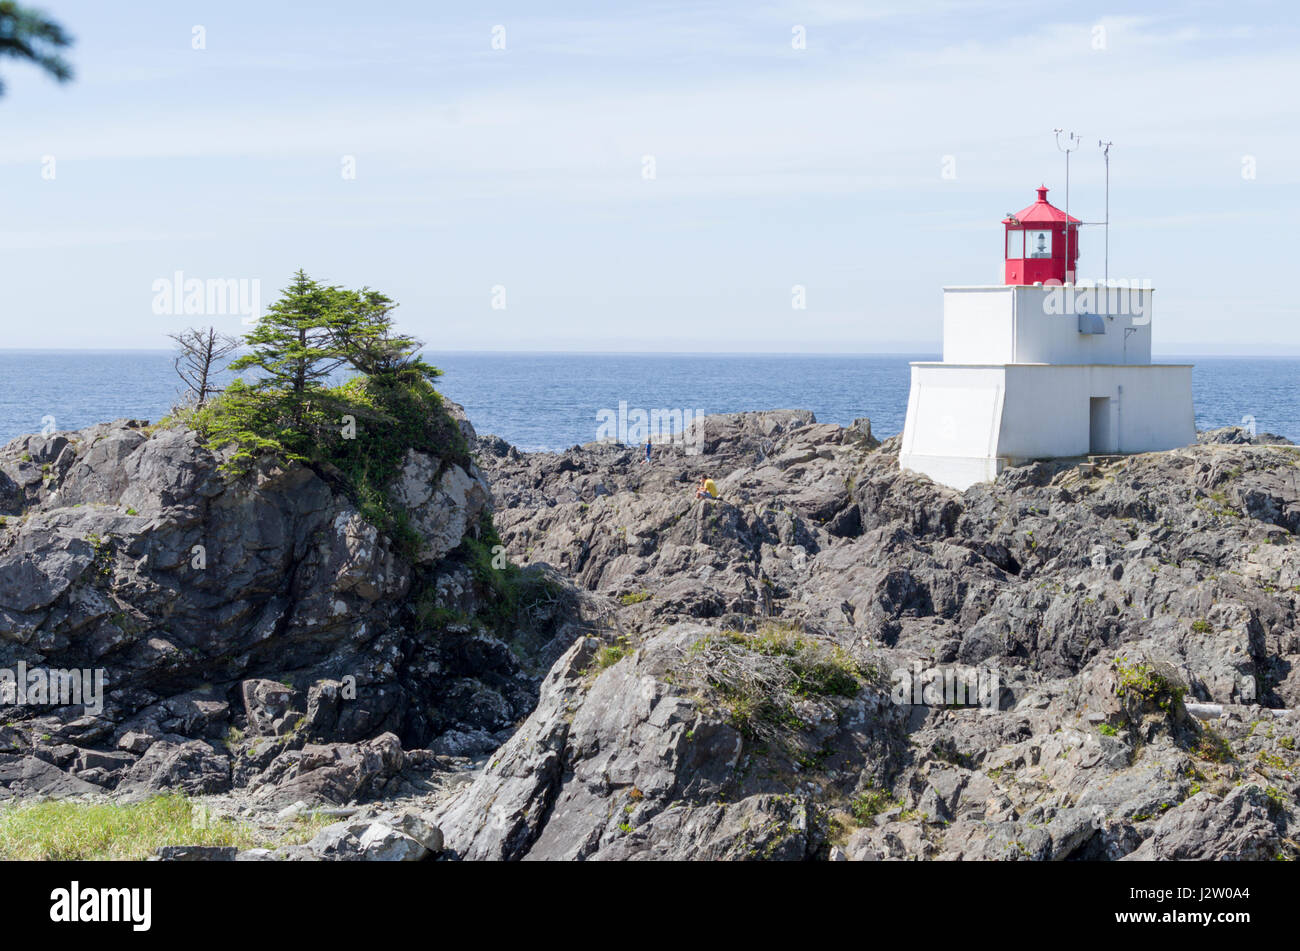 Lighthouse on the Ucluelet coast, Vancover Island, British Colmbia Canada - Stock Image